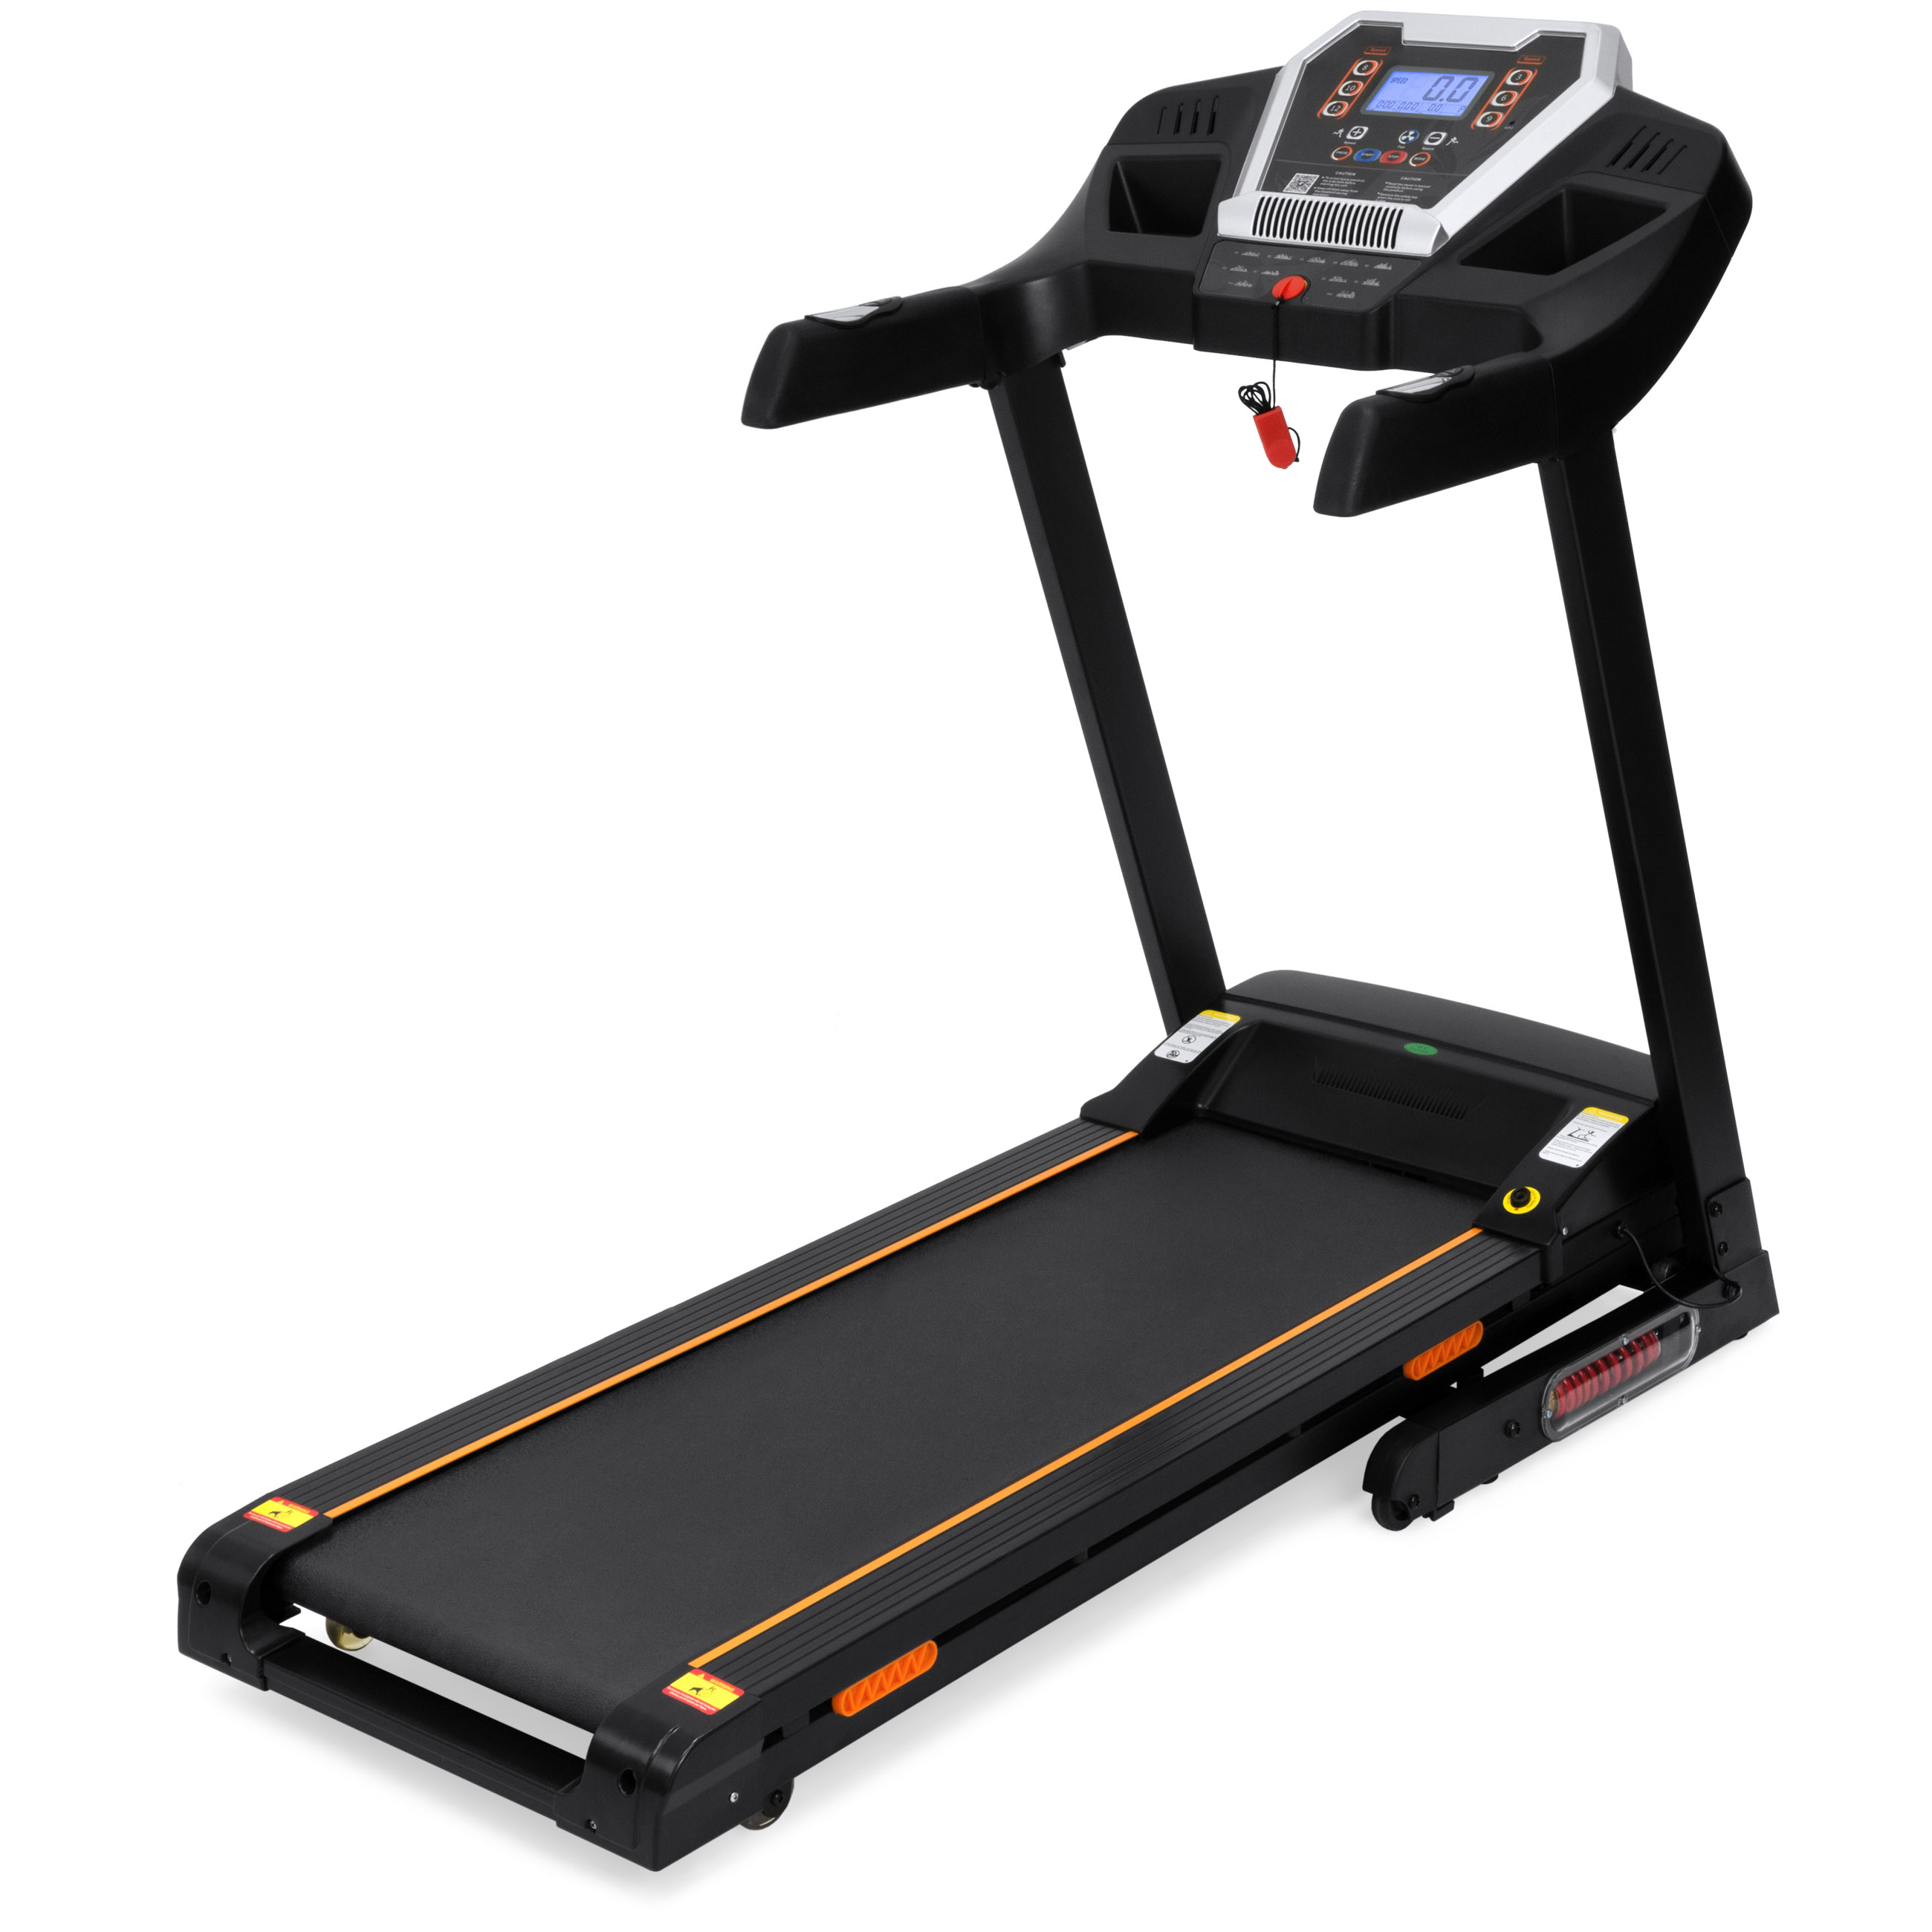 Best Choice Products 900W Folding Electric Bluetooth App-Control Treadmill w/ Incline, History Tracker, Speakers - Black